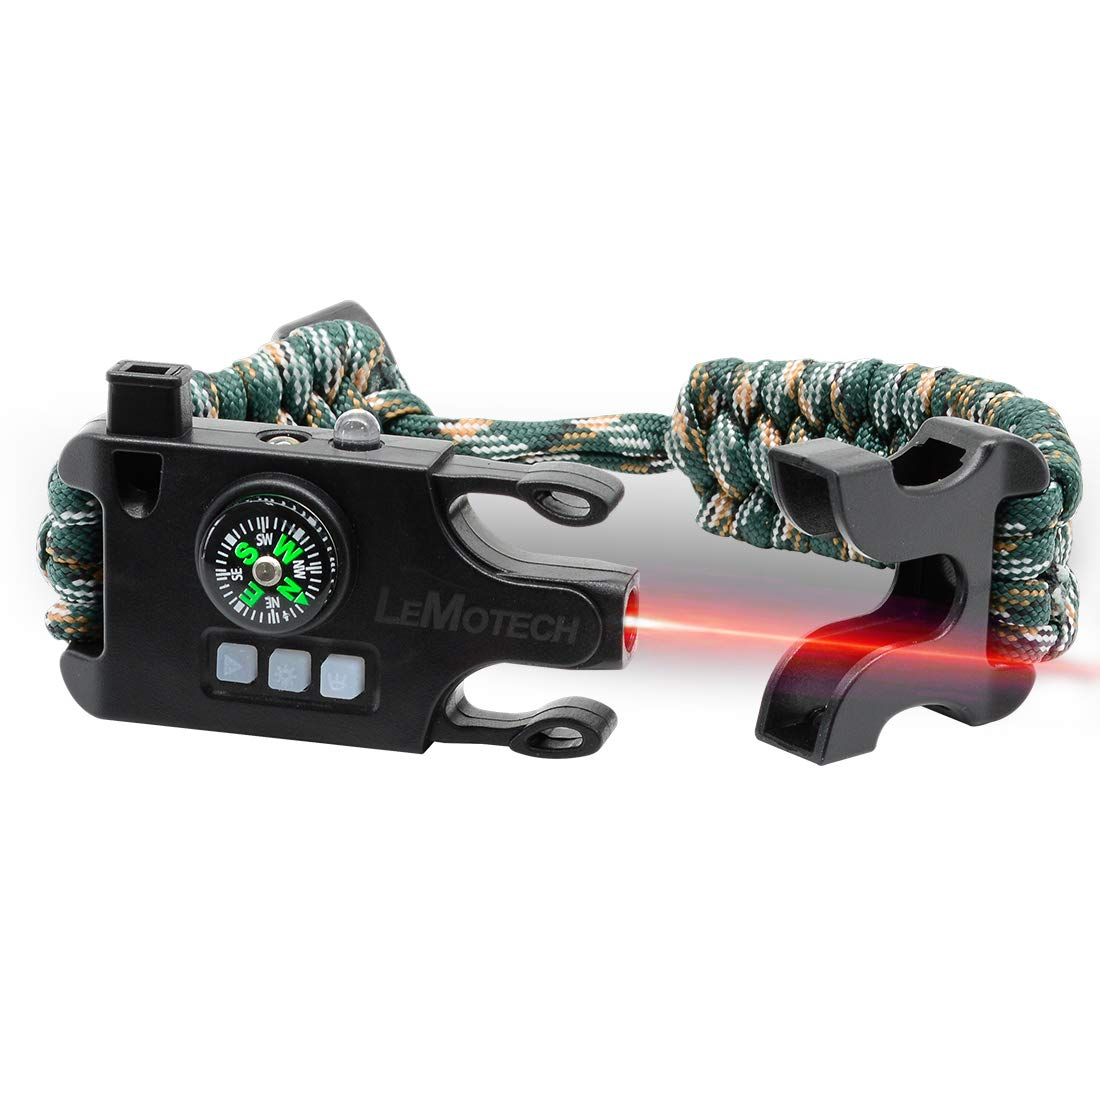 LeMotech Adjustable Survival Paracord Bracelet, Tactical Emergency Gear Kit Includes Laser Infrared, SOS LED Flashlight, UV Lamp, Upgrade Compass, Rescue Whistle-Outdoors, Hiking, Camping,and Hunting